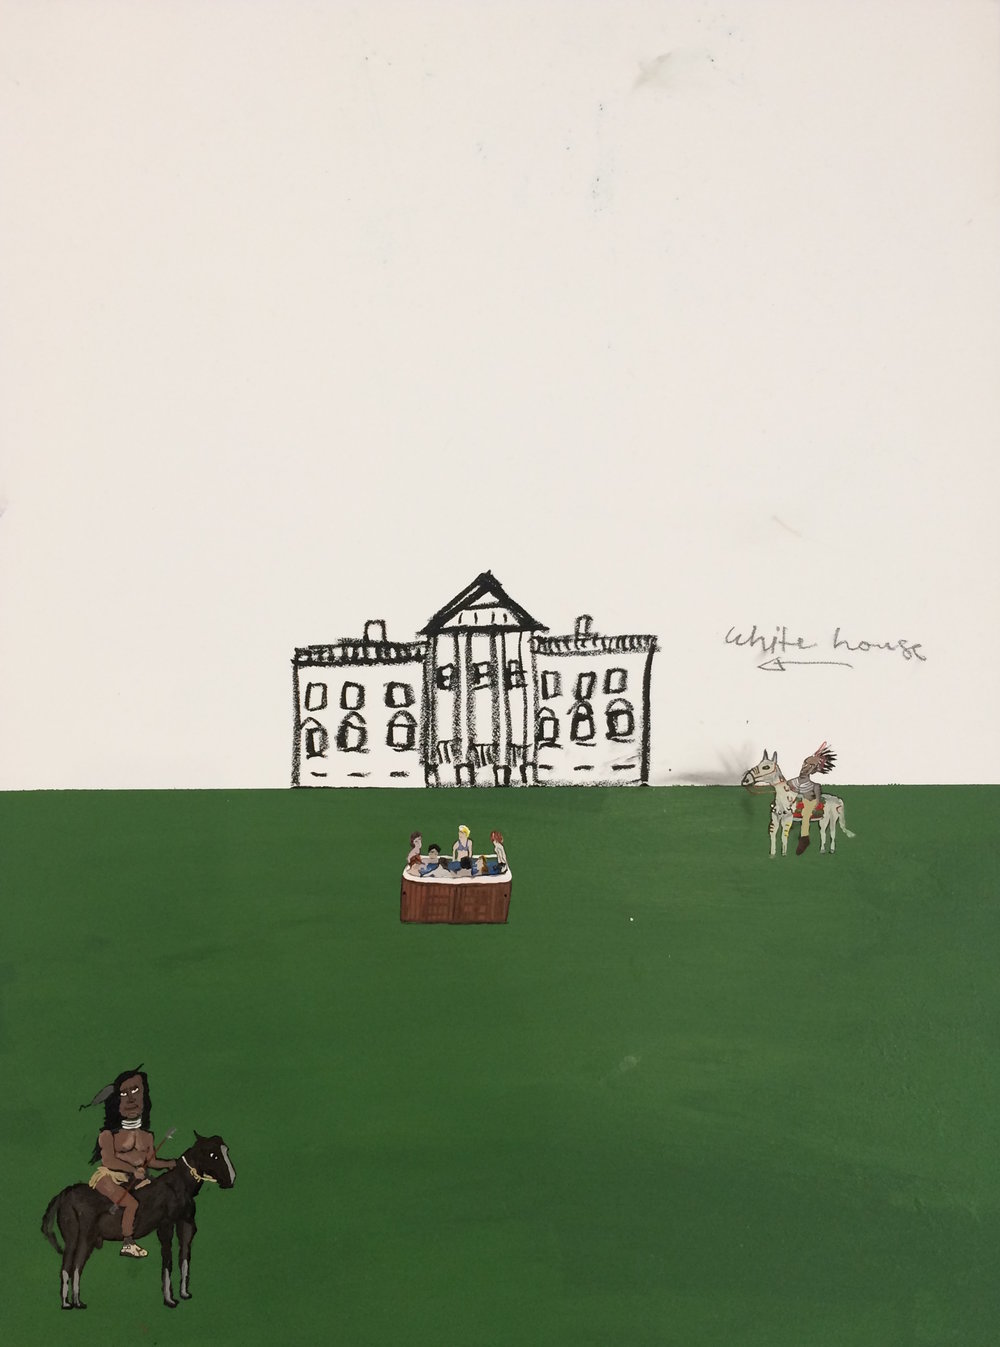 White House Series #4 / 2017 / Acrylic, house paint and pencil on wood panel / 24 x 18 inches